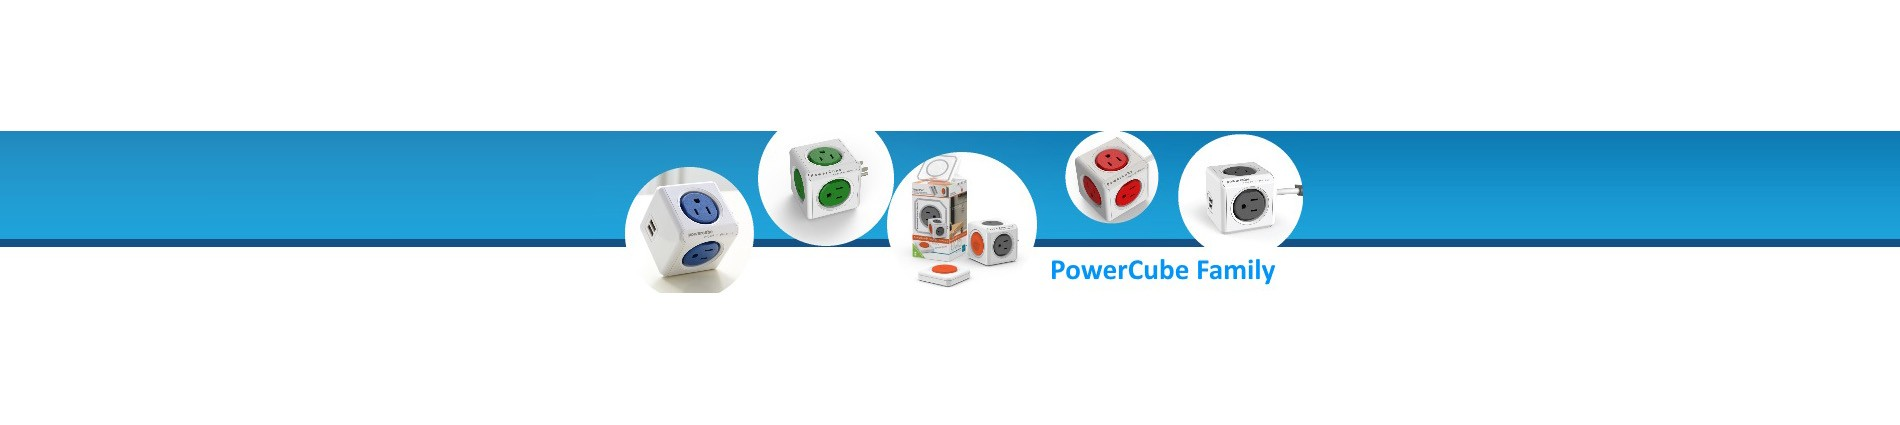 PowerCube 家族